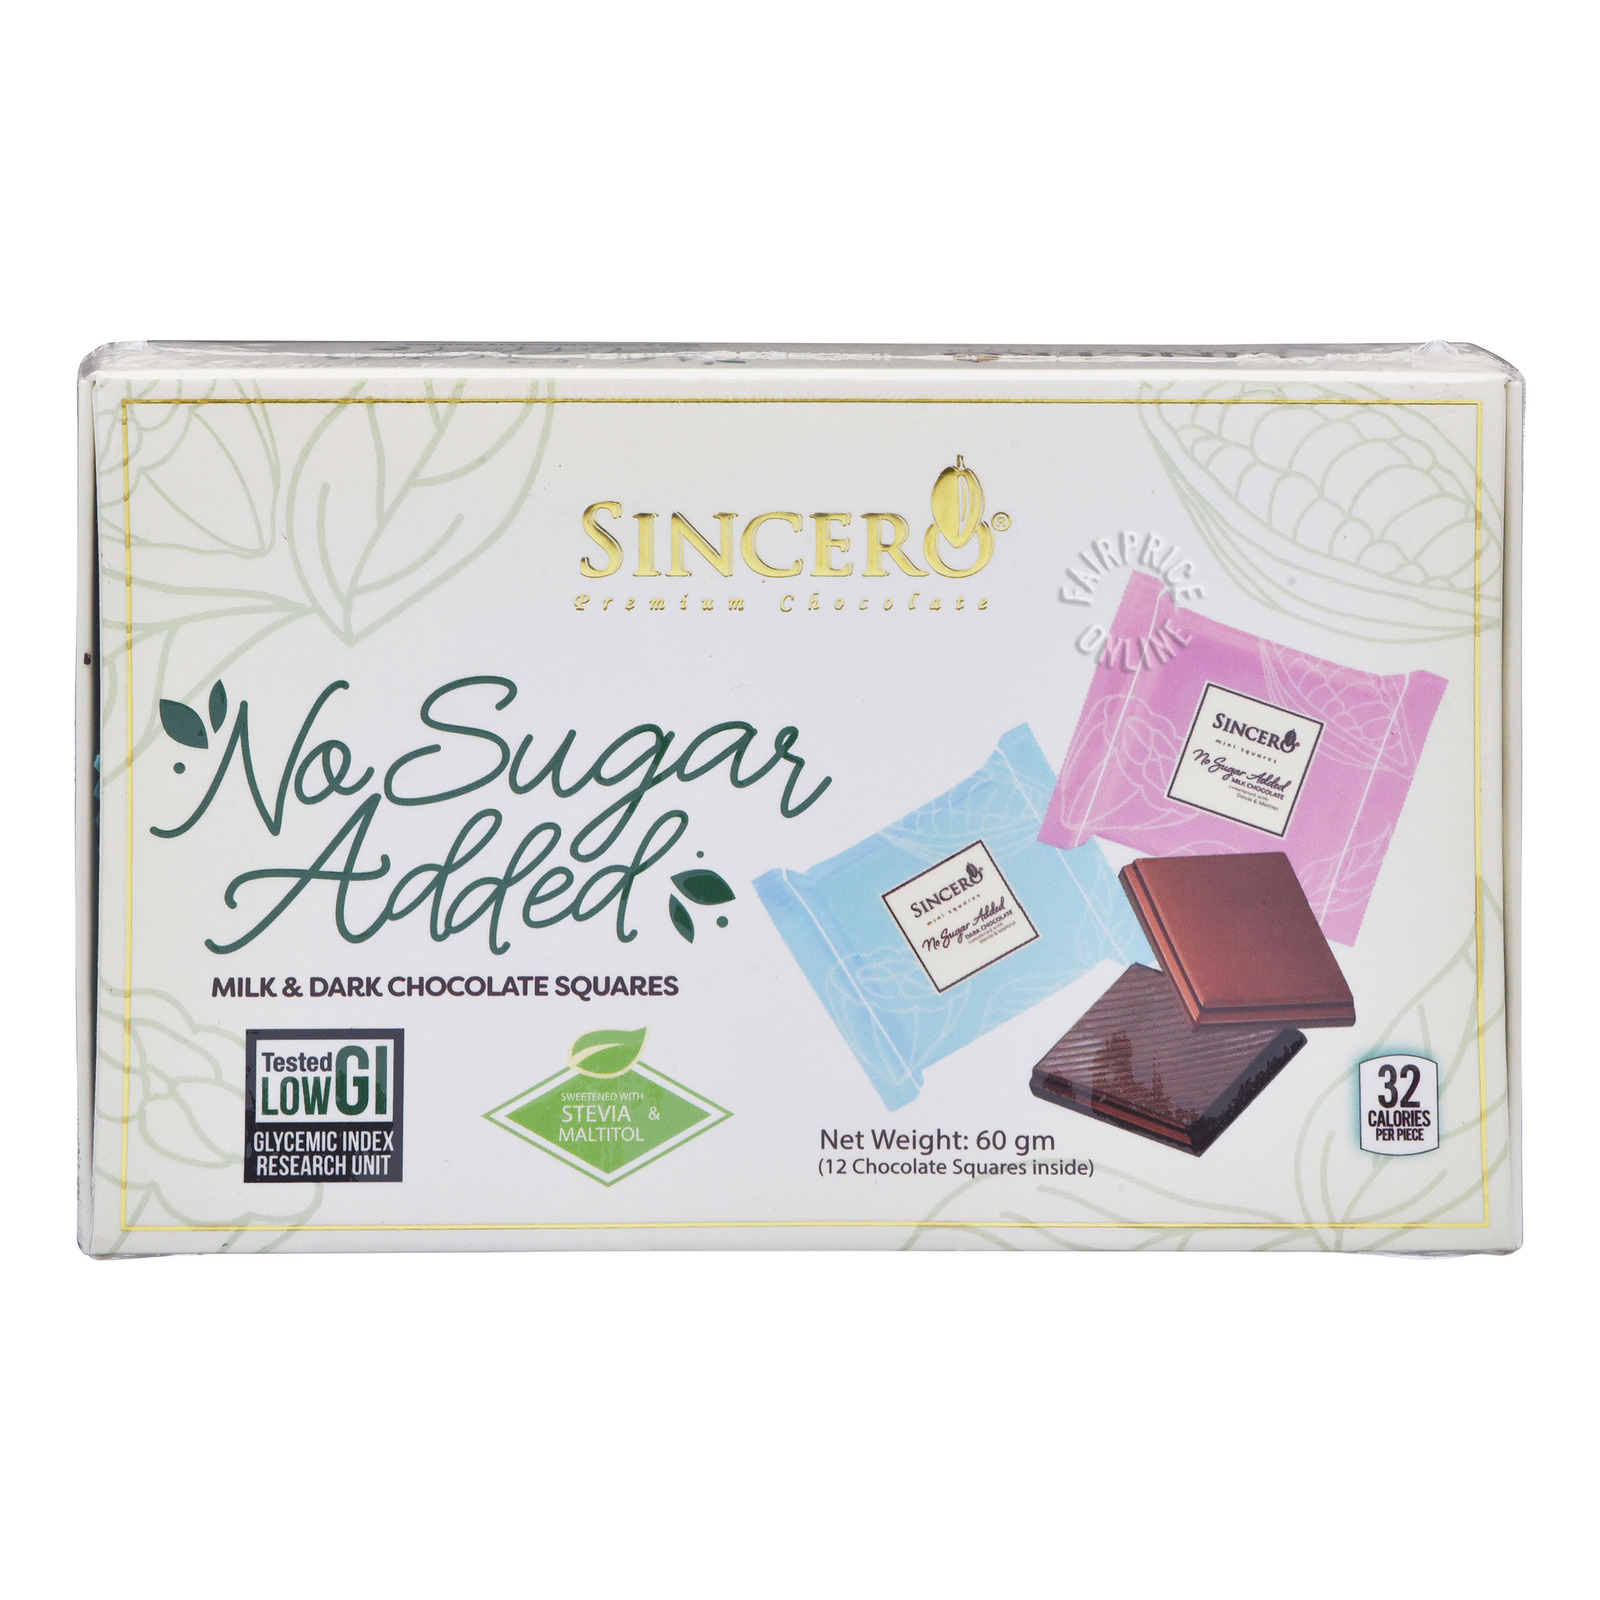 Sincero Milk & Dark Chocolate Squares (No Sugar Added)